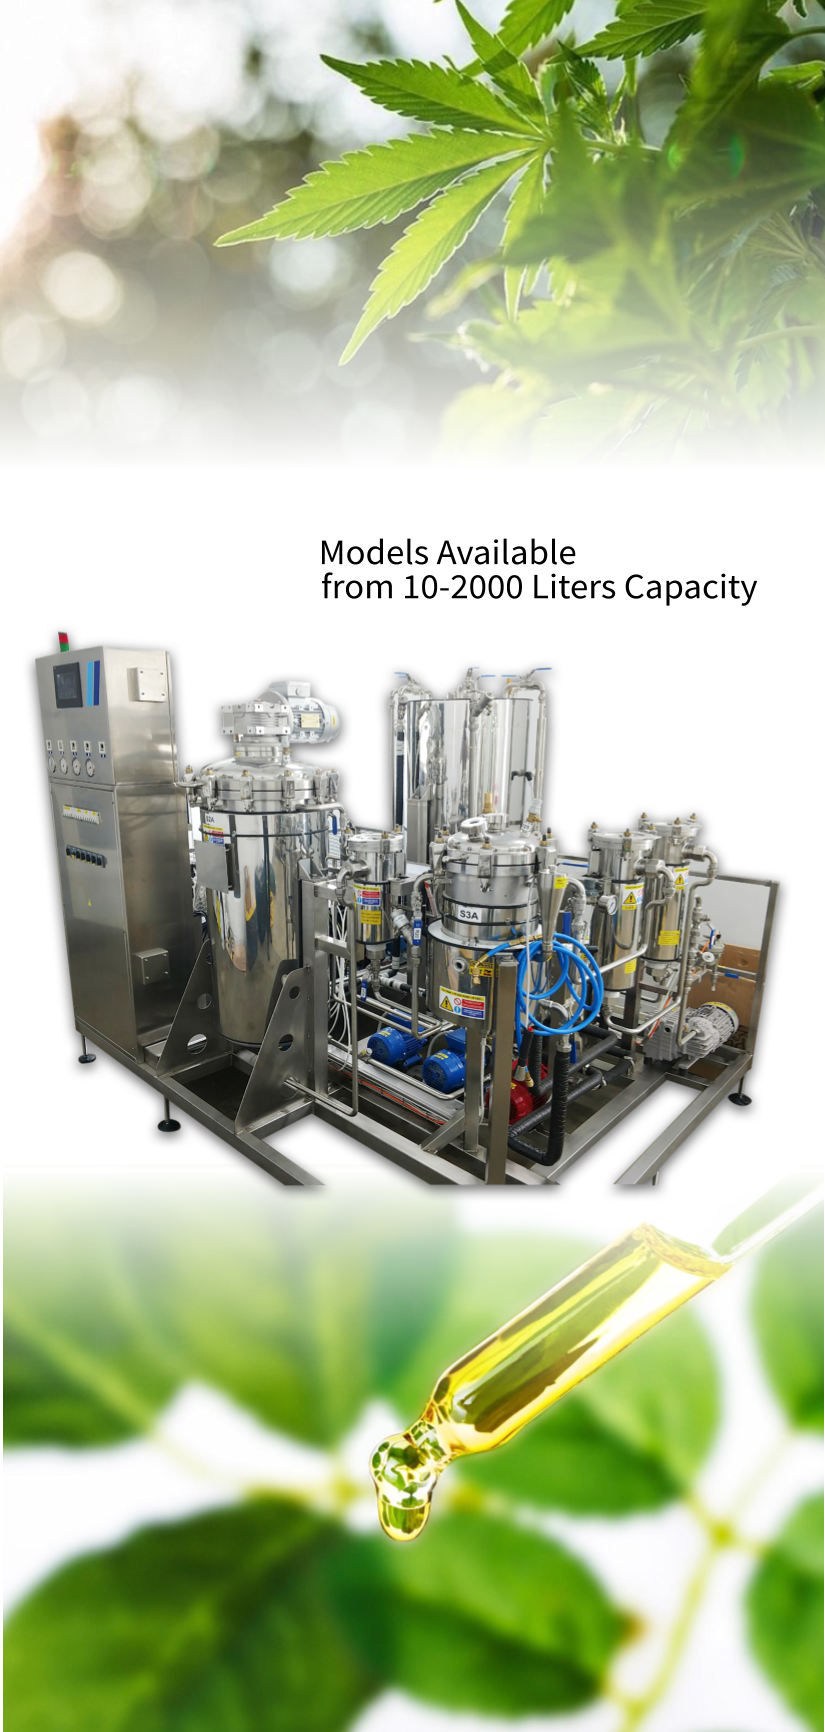 FC Extractor Models - Most extraction processes use high heat and/or high pressure to distill the oils of the plant. In doing so, essential qualities of the oil, the terpenes, are burned or blasted away, thus compromising the integrity of the oil. Unlike these common extraction processes, Timatic's equipment and extraction process use low heat and low pressure resulting in purer oils of the highest quality, which are fully ready for creams, lotions, and vape pens.Timatic extraction equipment uses tetrafluoroethane, HFC 134a, as the solvent for extraction. More traditional extraction processes use flammable, volatile solvents like Butane or Ethanol, or require extremely high pressure for the solvent to liquify. These processes often require expensive buildings or remodels that must meet federal and state building codes.HFC 134a extractions use dry or fresh flower or trim and can be performed without any pre-treatment. Consistency of the extracted oil from batch to batch is controlled through a microprocessor, which can be programmed to control the parameters and variables of the extraction. Up to 99 programmed processes are possible with the Timatic microprocessor. The Timatic extraction processes and equipment are truly state of the art and produce a product of the highest quality.Please contact us if you would like to learn more about our equipment.